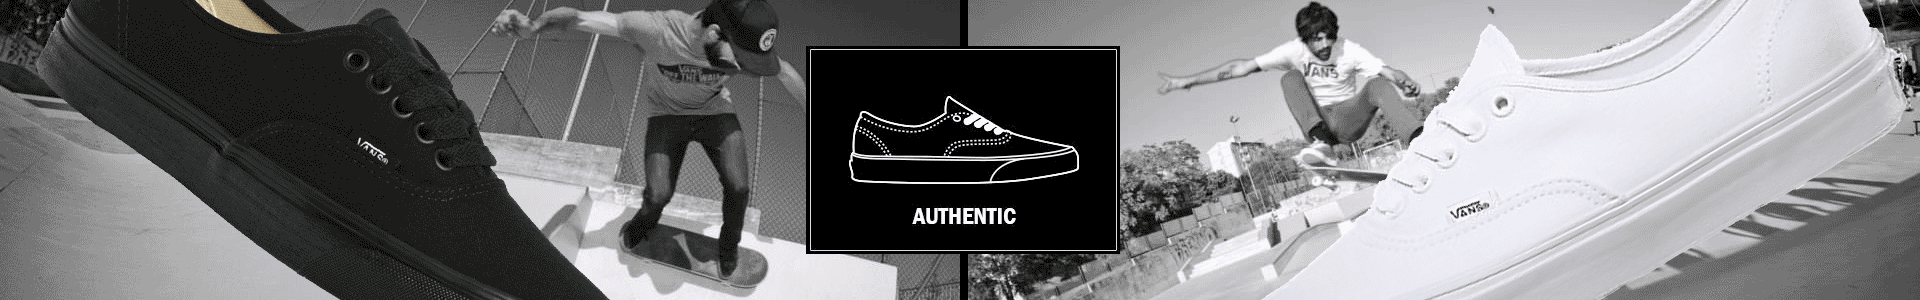 Vans Authentic Banner